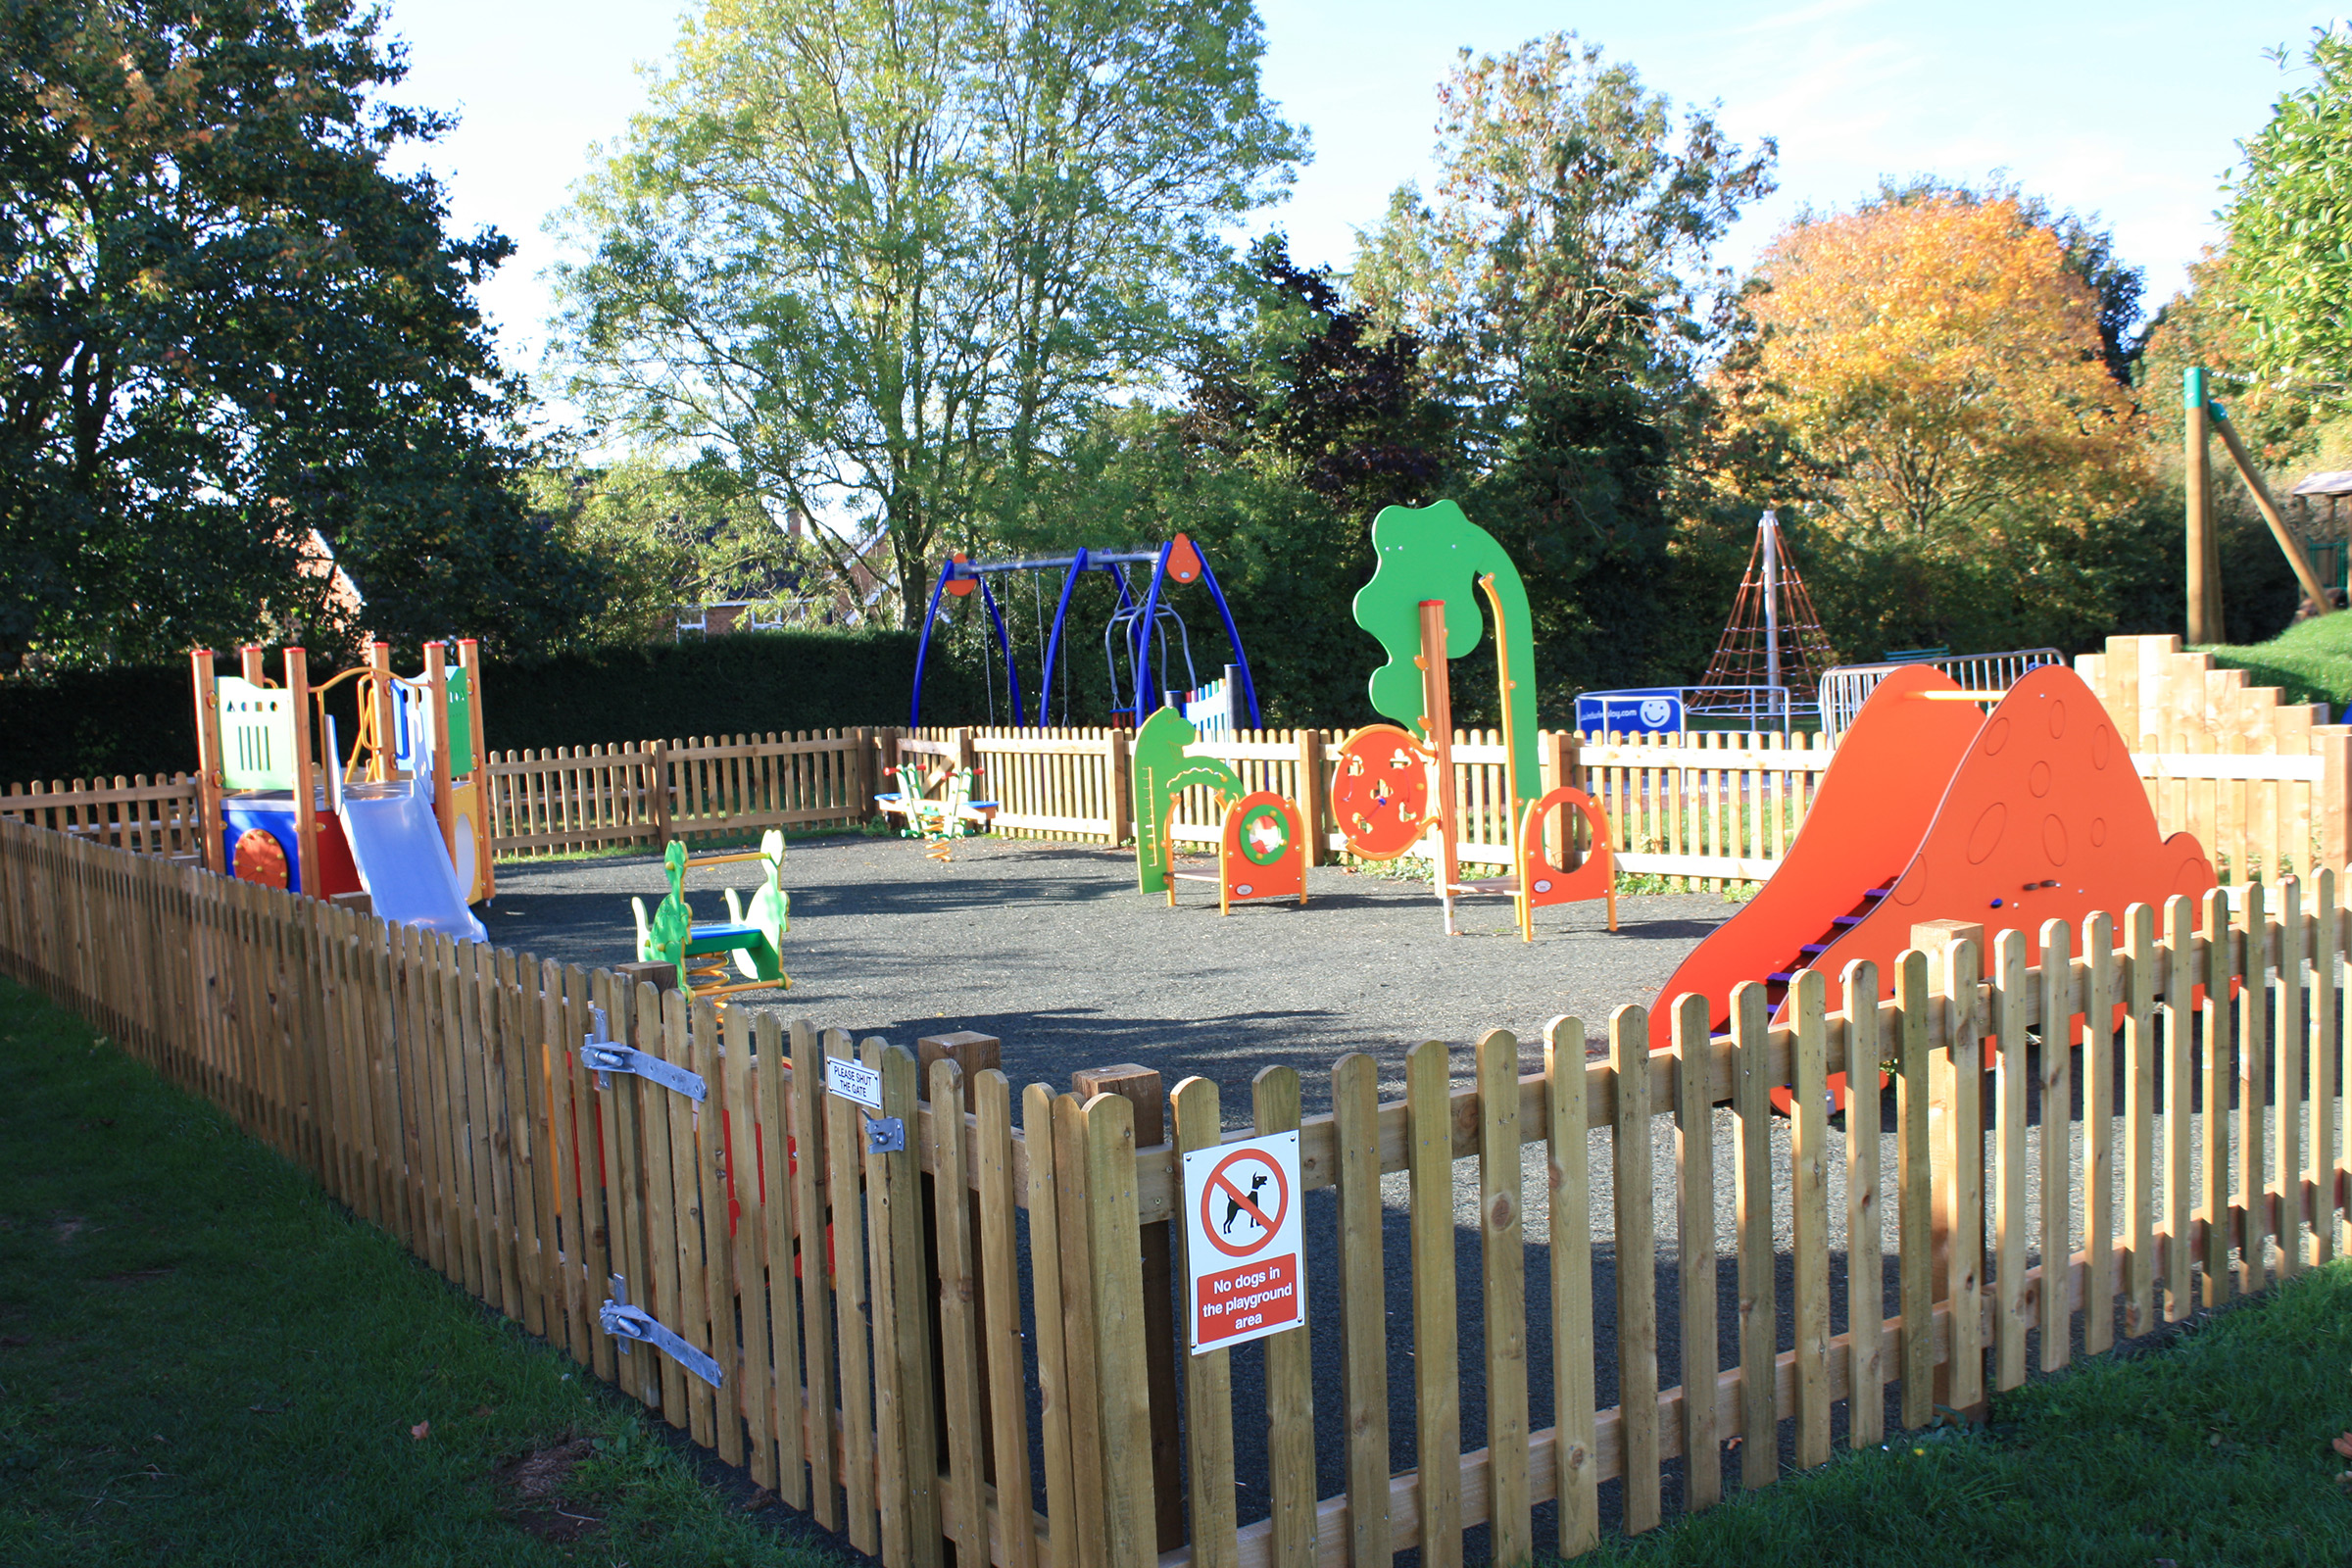 Playscape-Playgrounds-Greetham-Community-Plaground-12